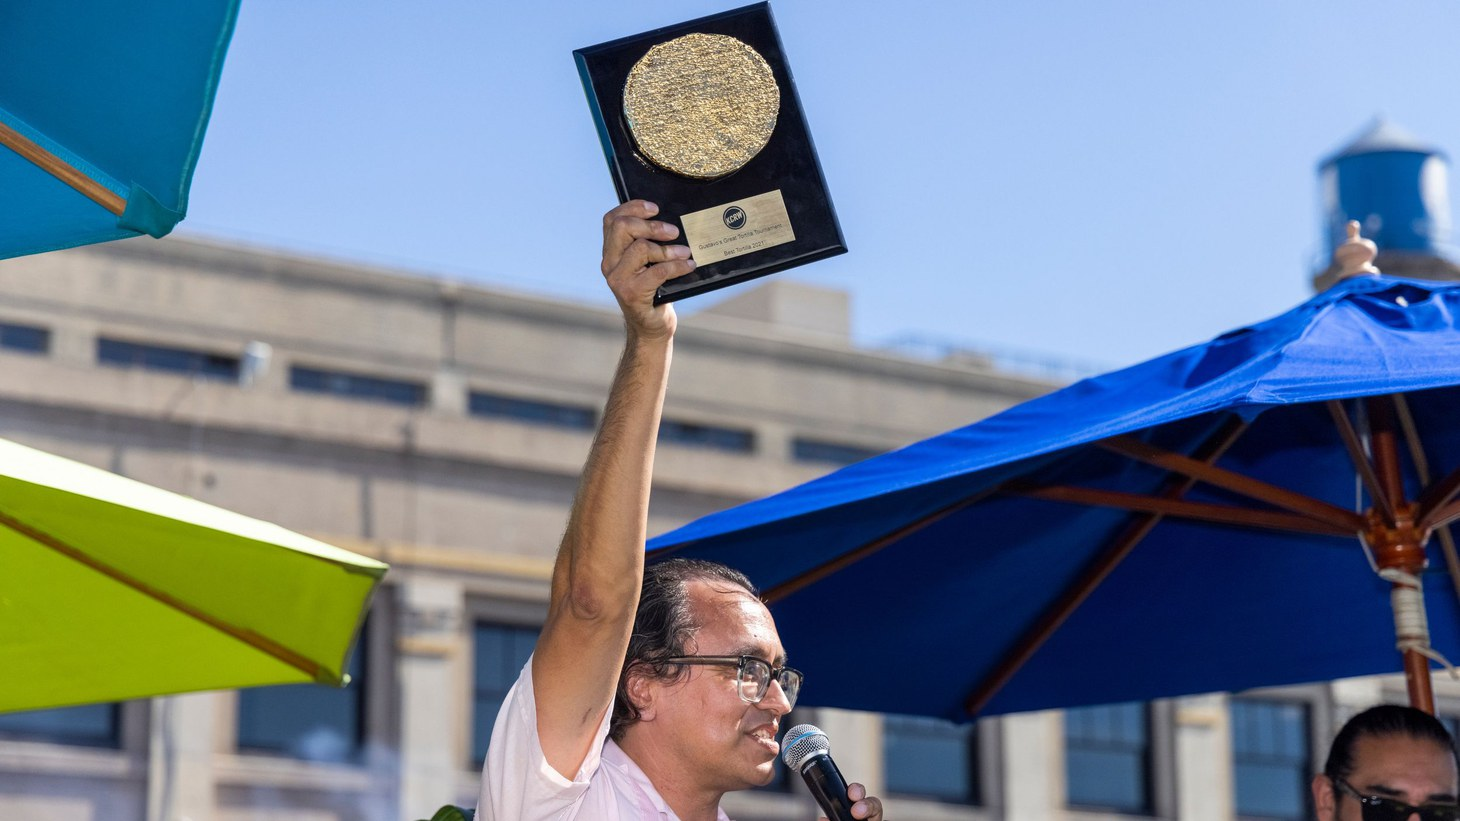 Gustavo Arellano declares the winner of the coveted Golden Tortilla. Who could it be?